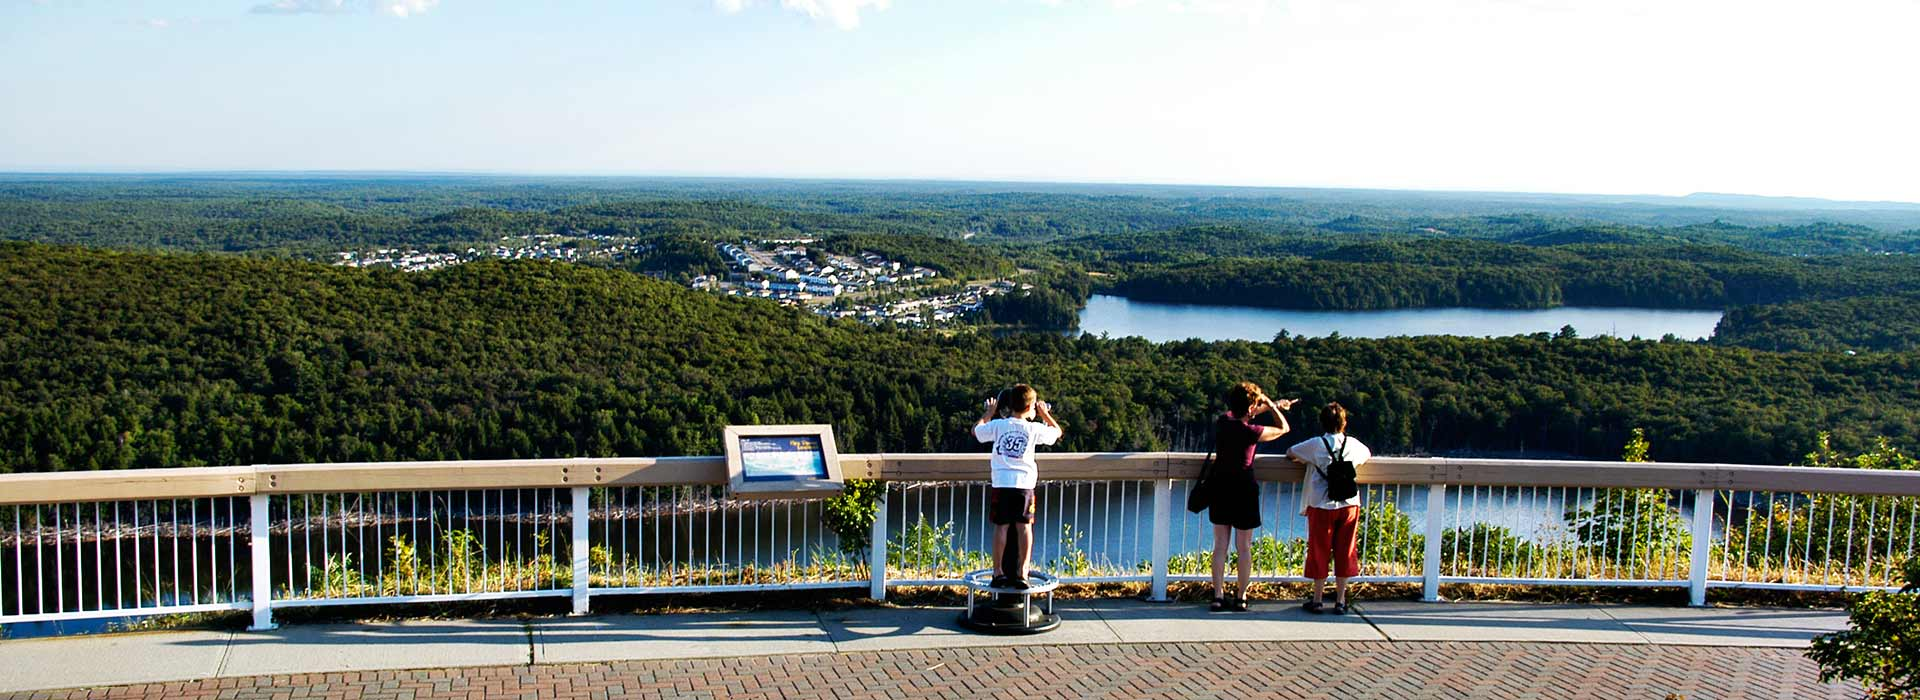 elliot-lake-fire-tower-lookout